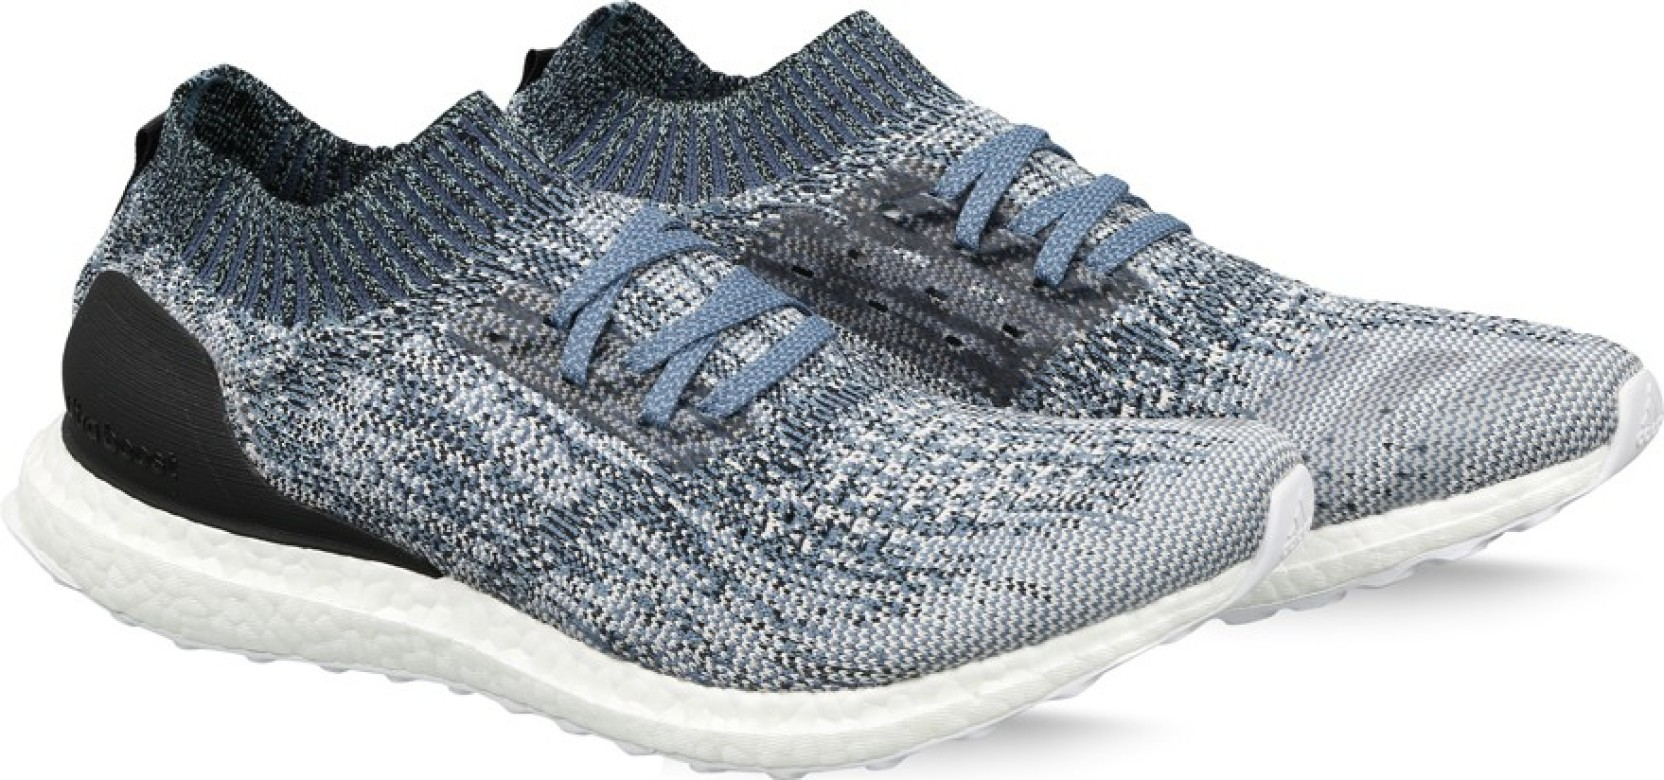 47f28ef3e1d56 ADIDAS ULTRABOOST UNCAGED PARLEY Running Shoes For Men - Buy ADIDAS ...